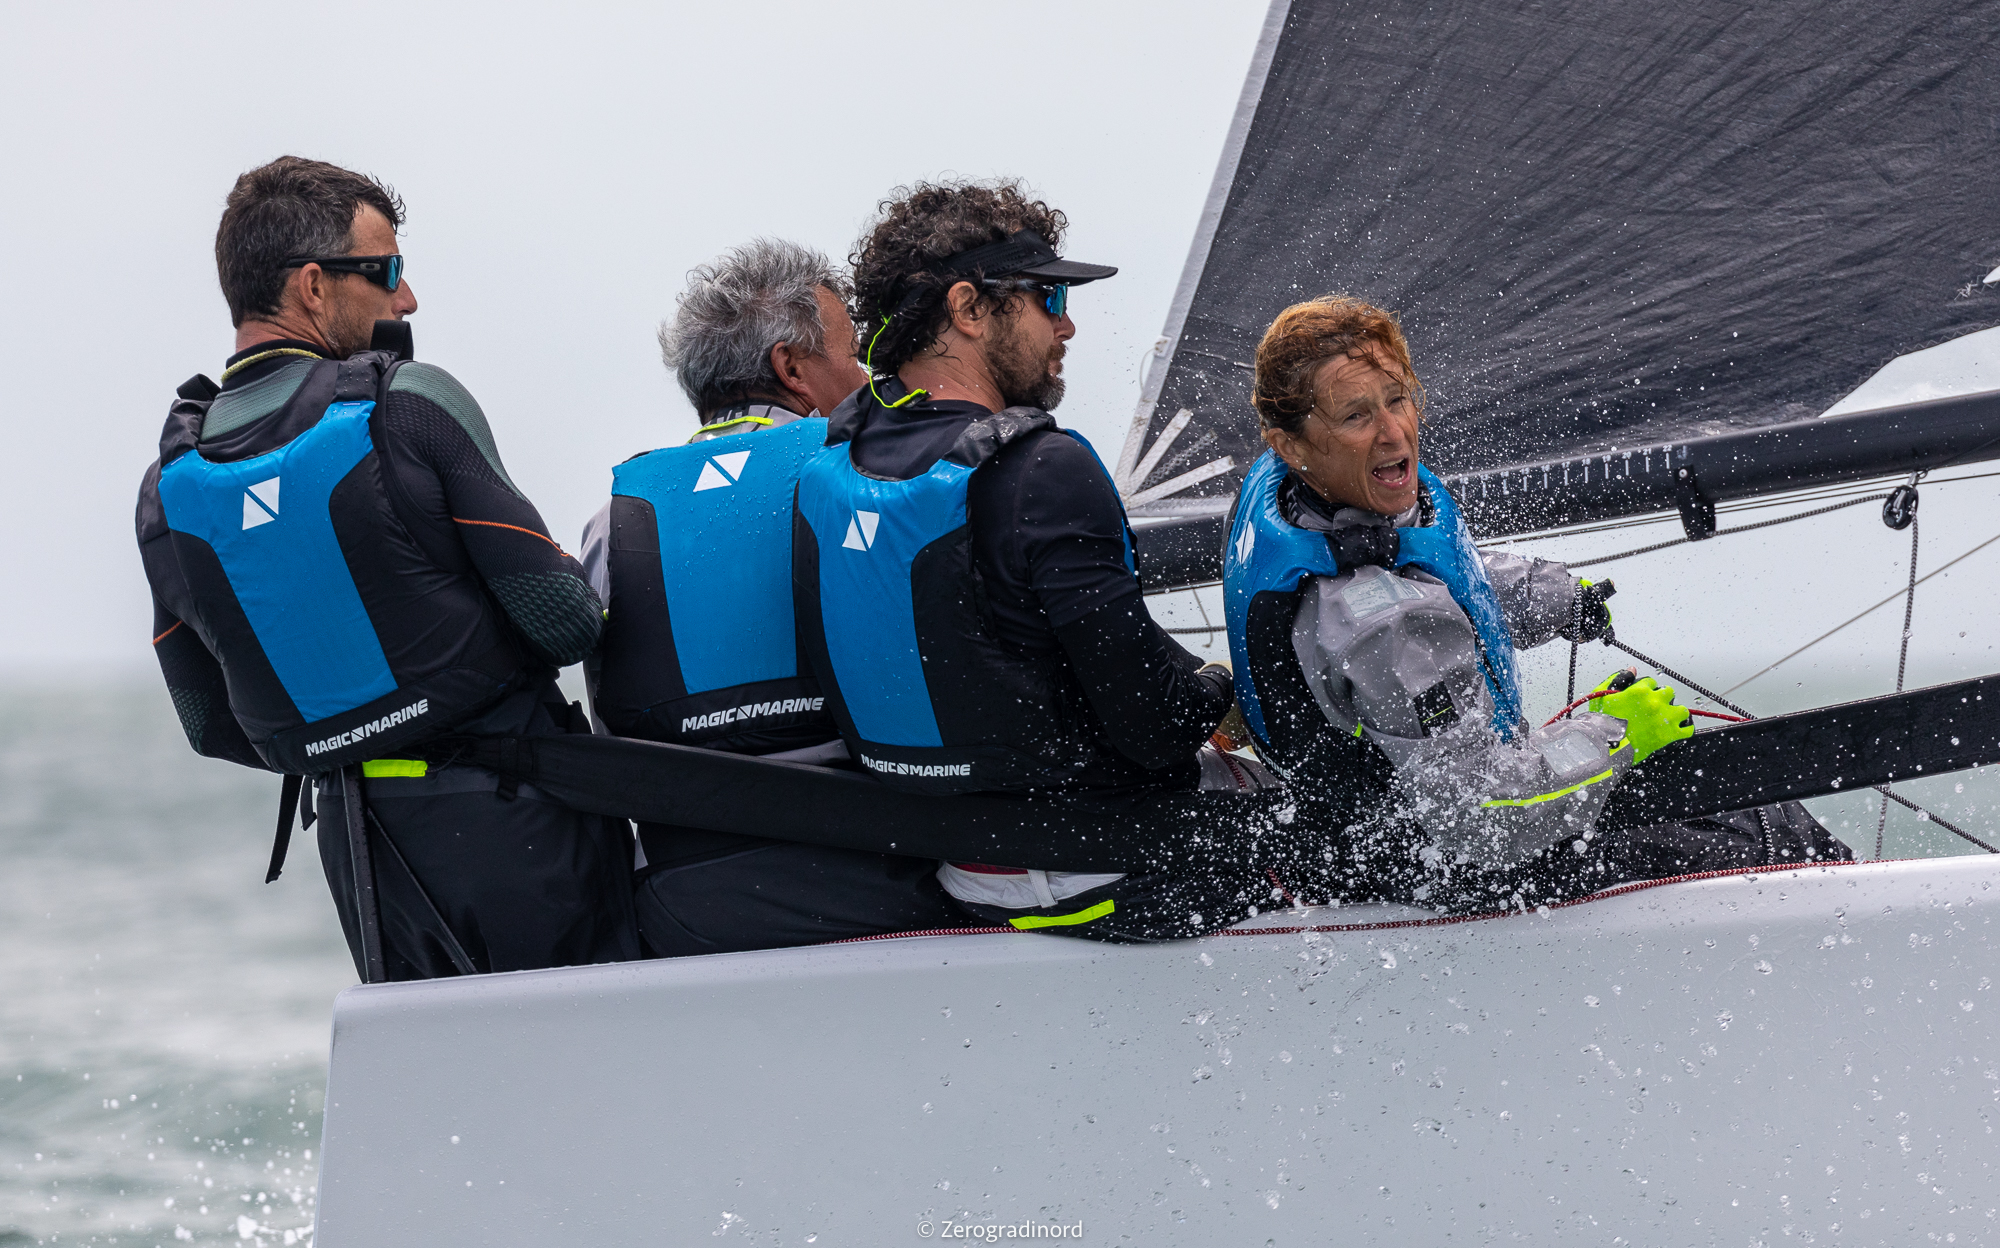 Melges20_030419_low-112.jpg